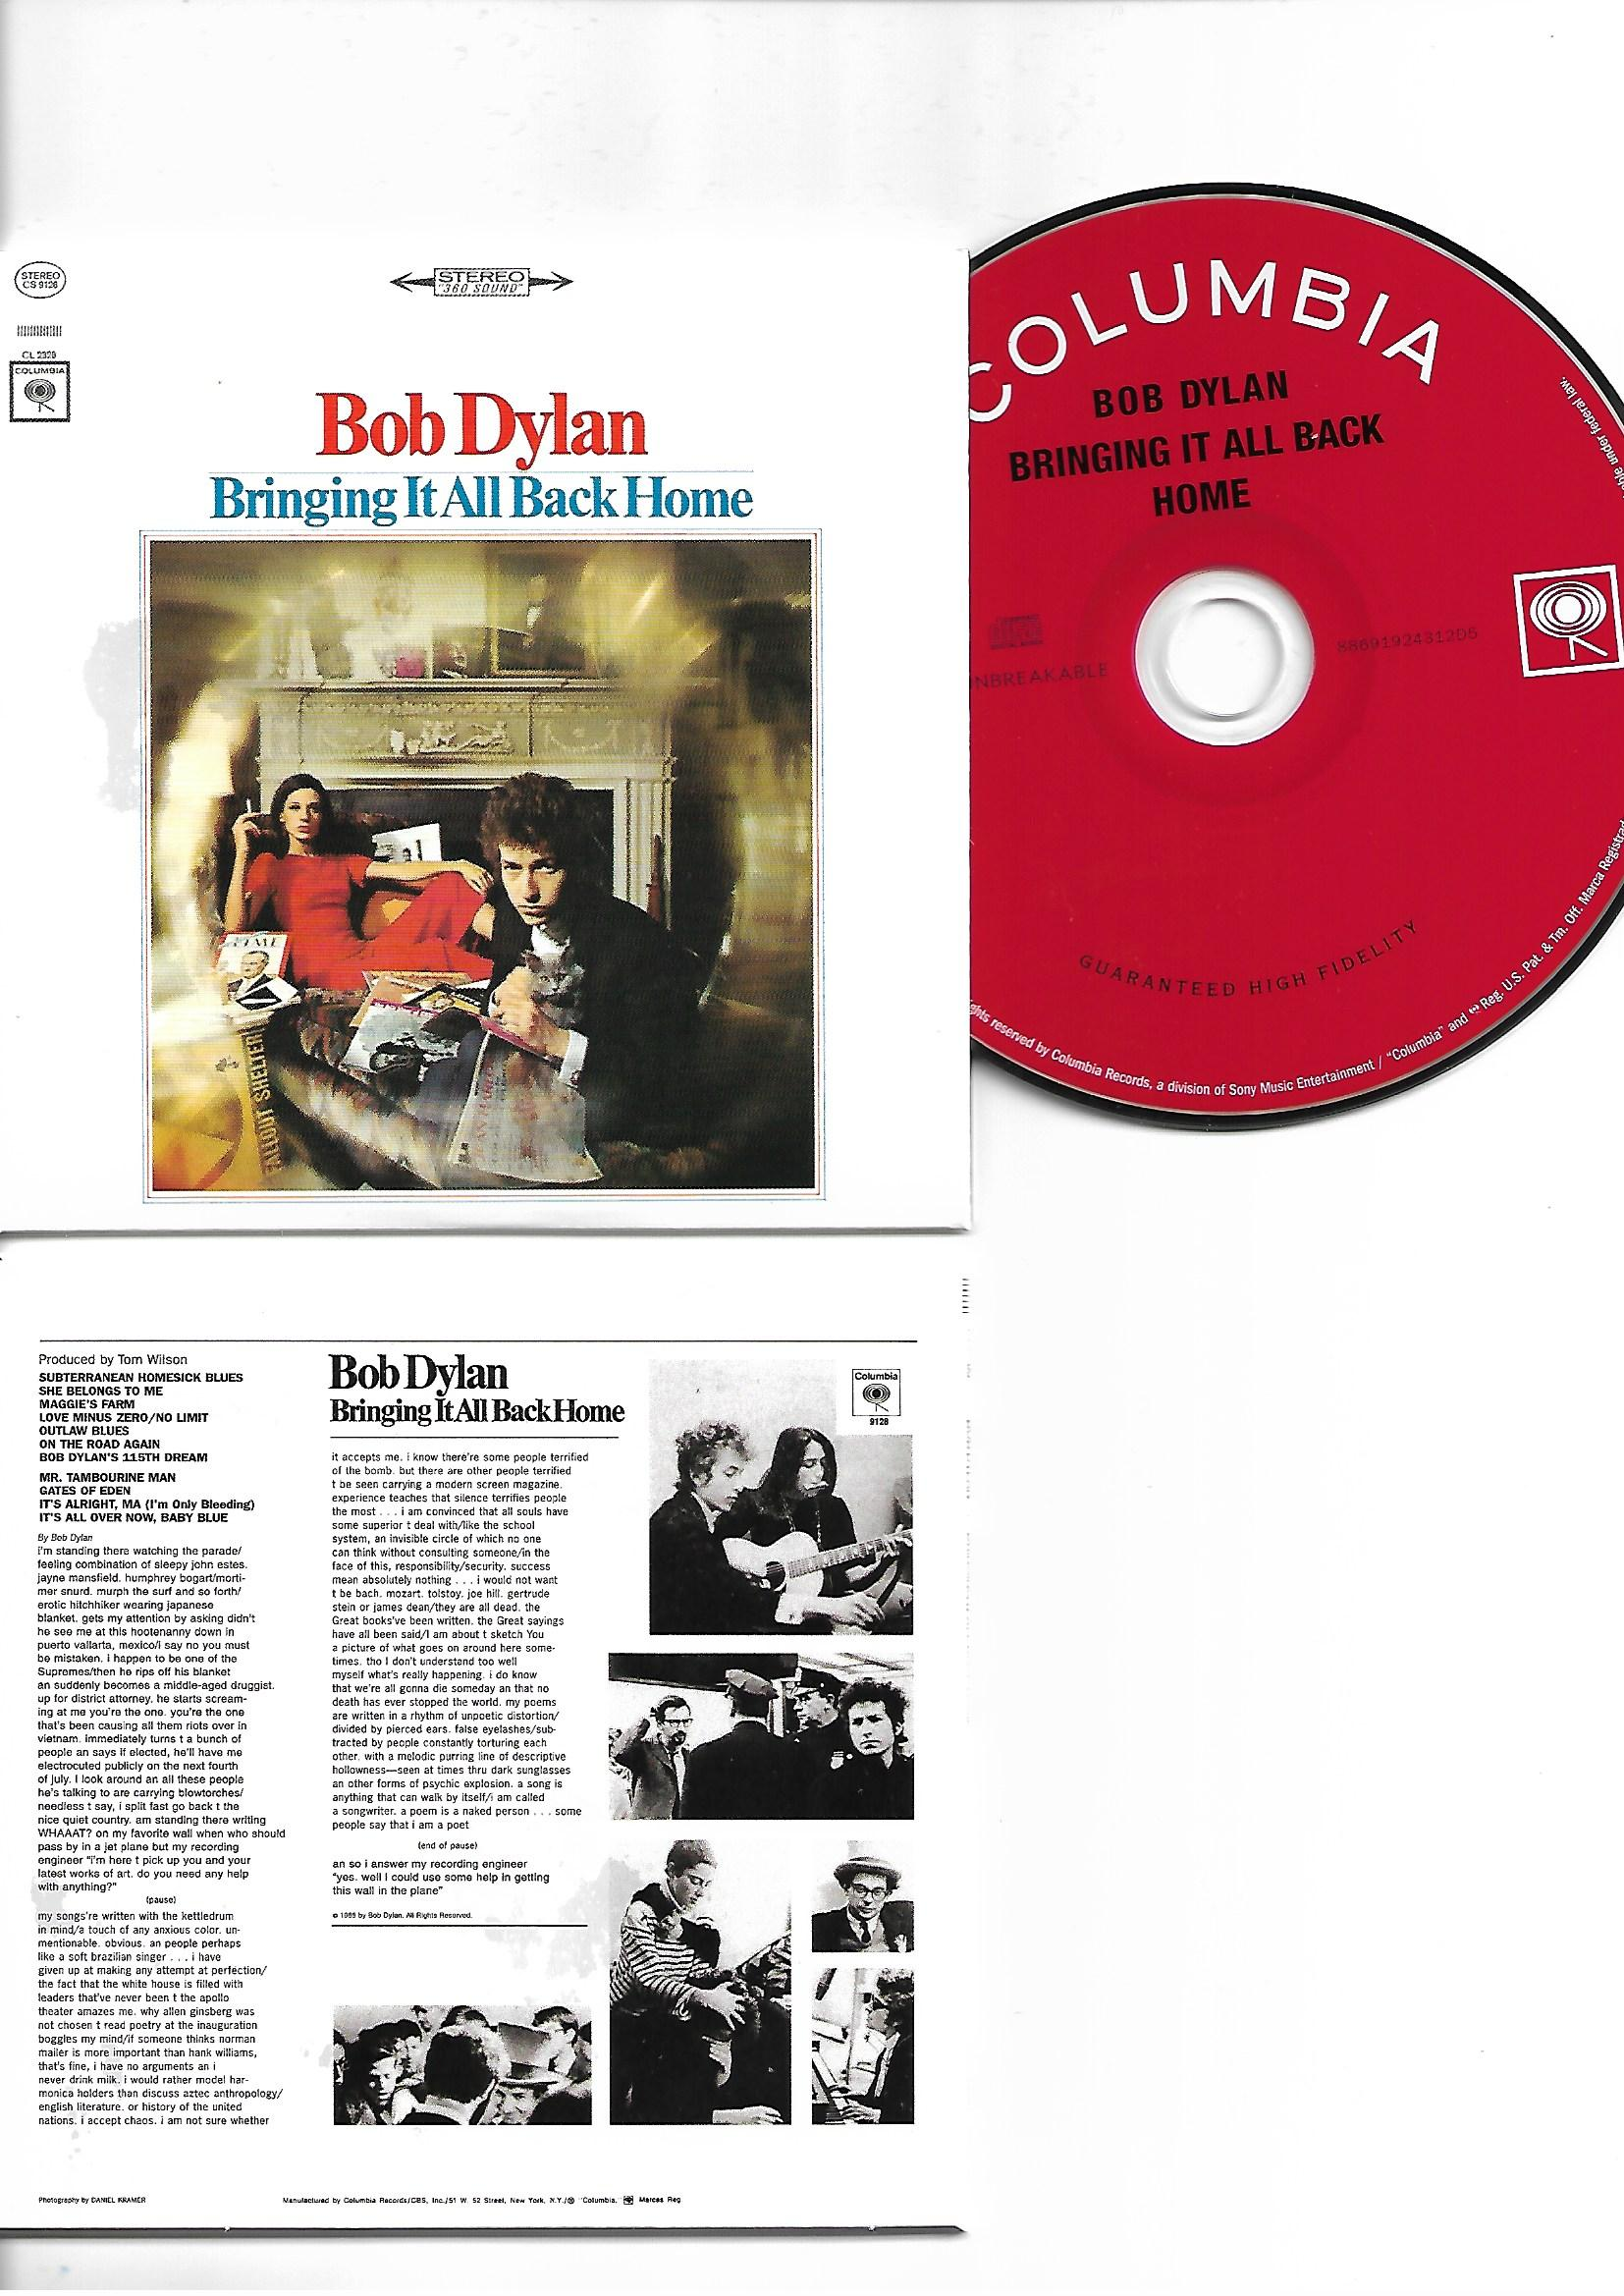 BOB DYLAN - Bringing It All Back Home 1965 - MINI LP REPLICA CARD BOARD SLEEVE - CD